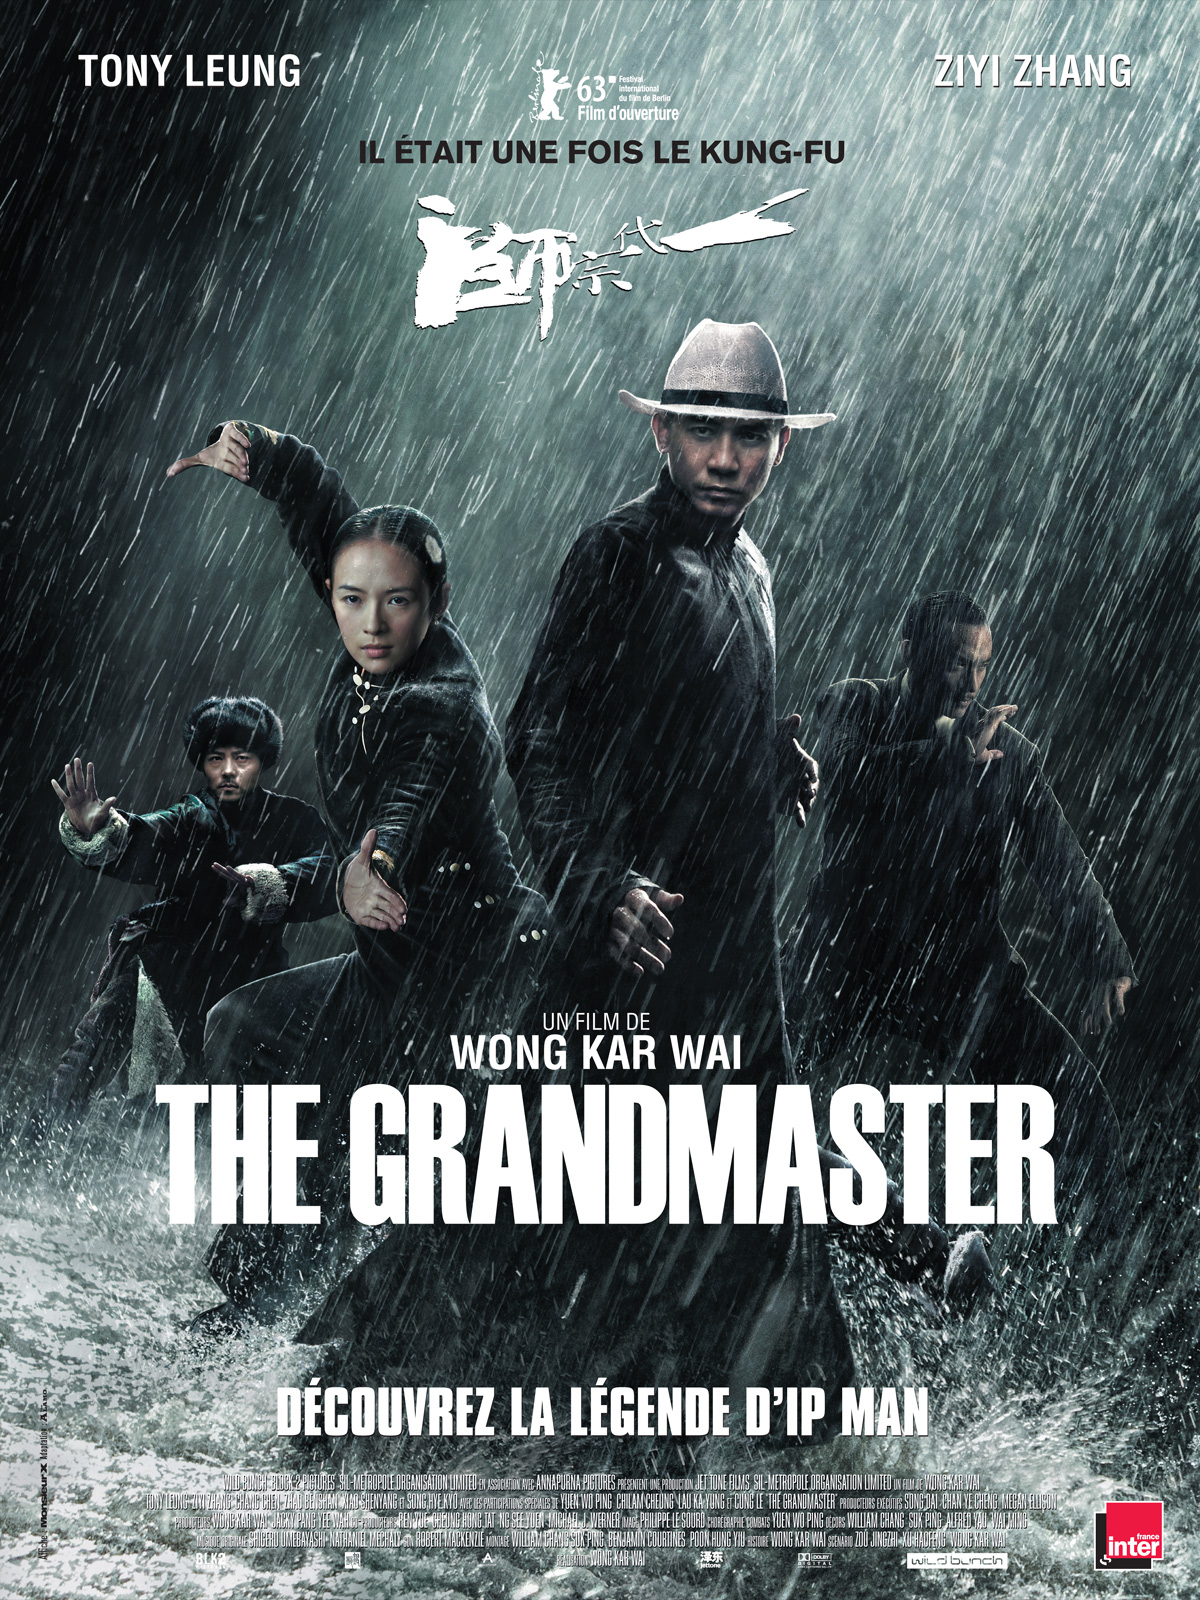 Télécharger The Grandmaster DVDRIP TUREFRENCH